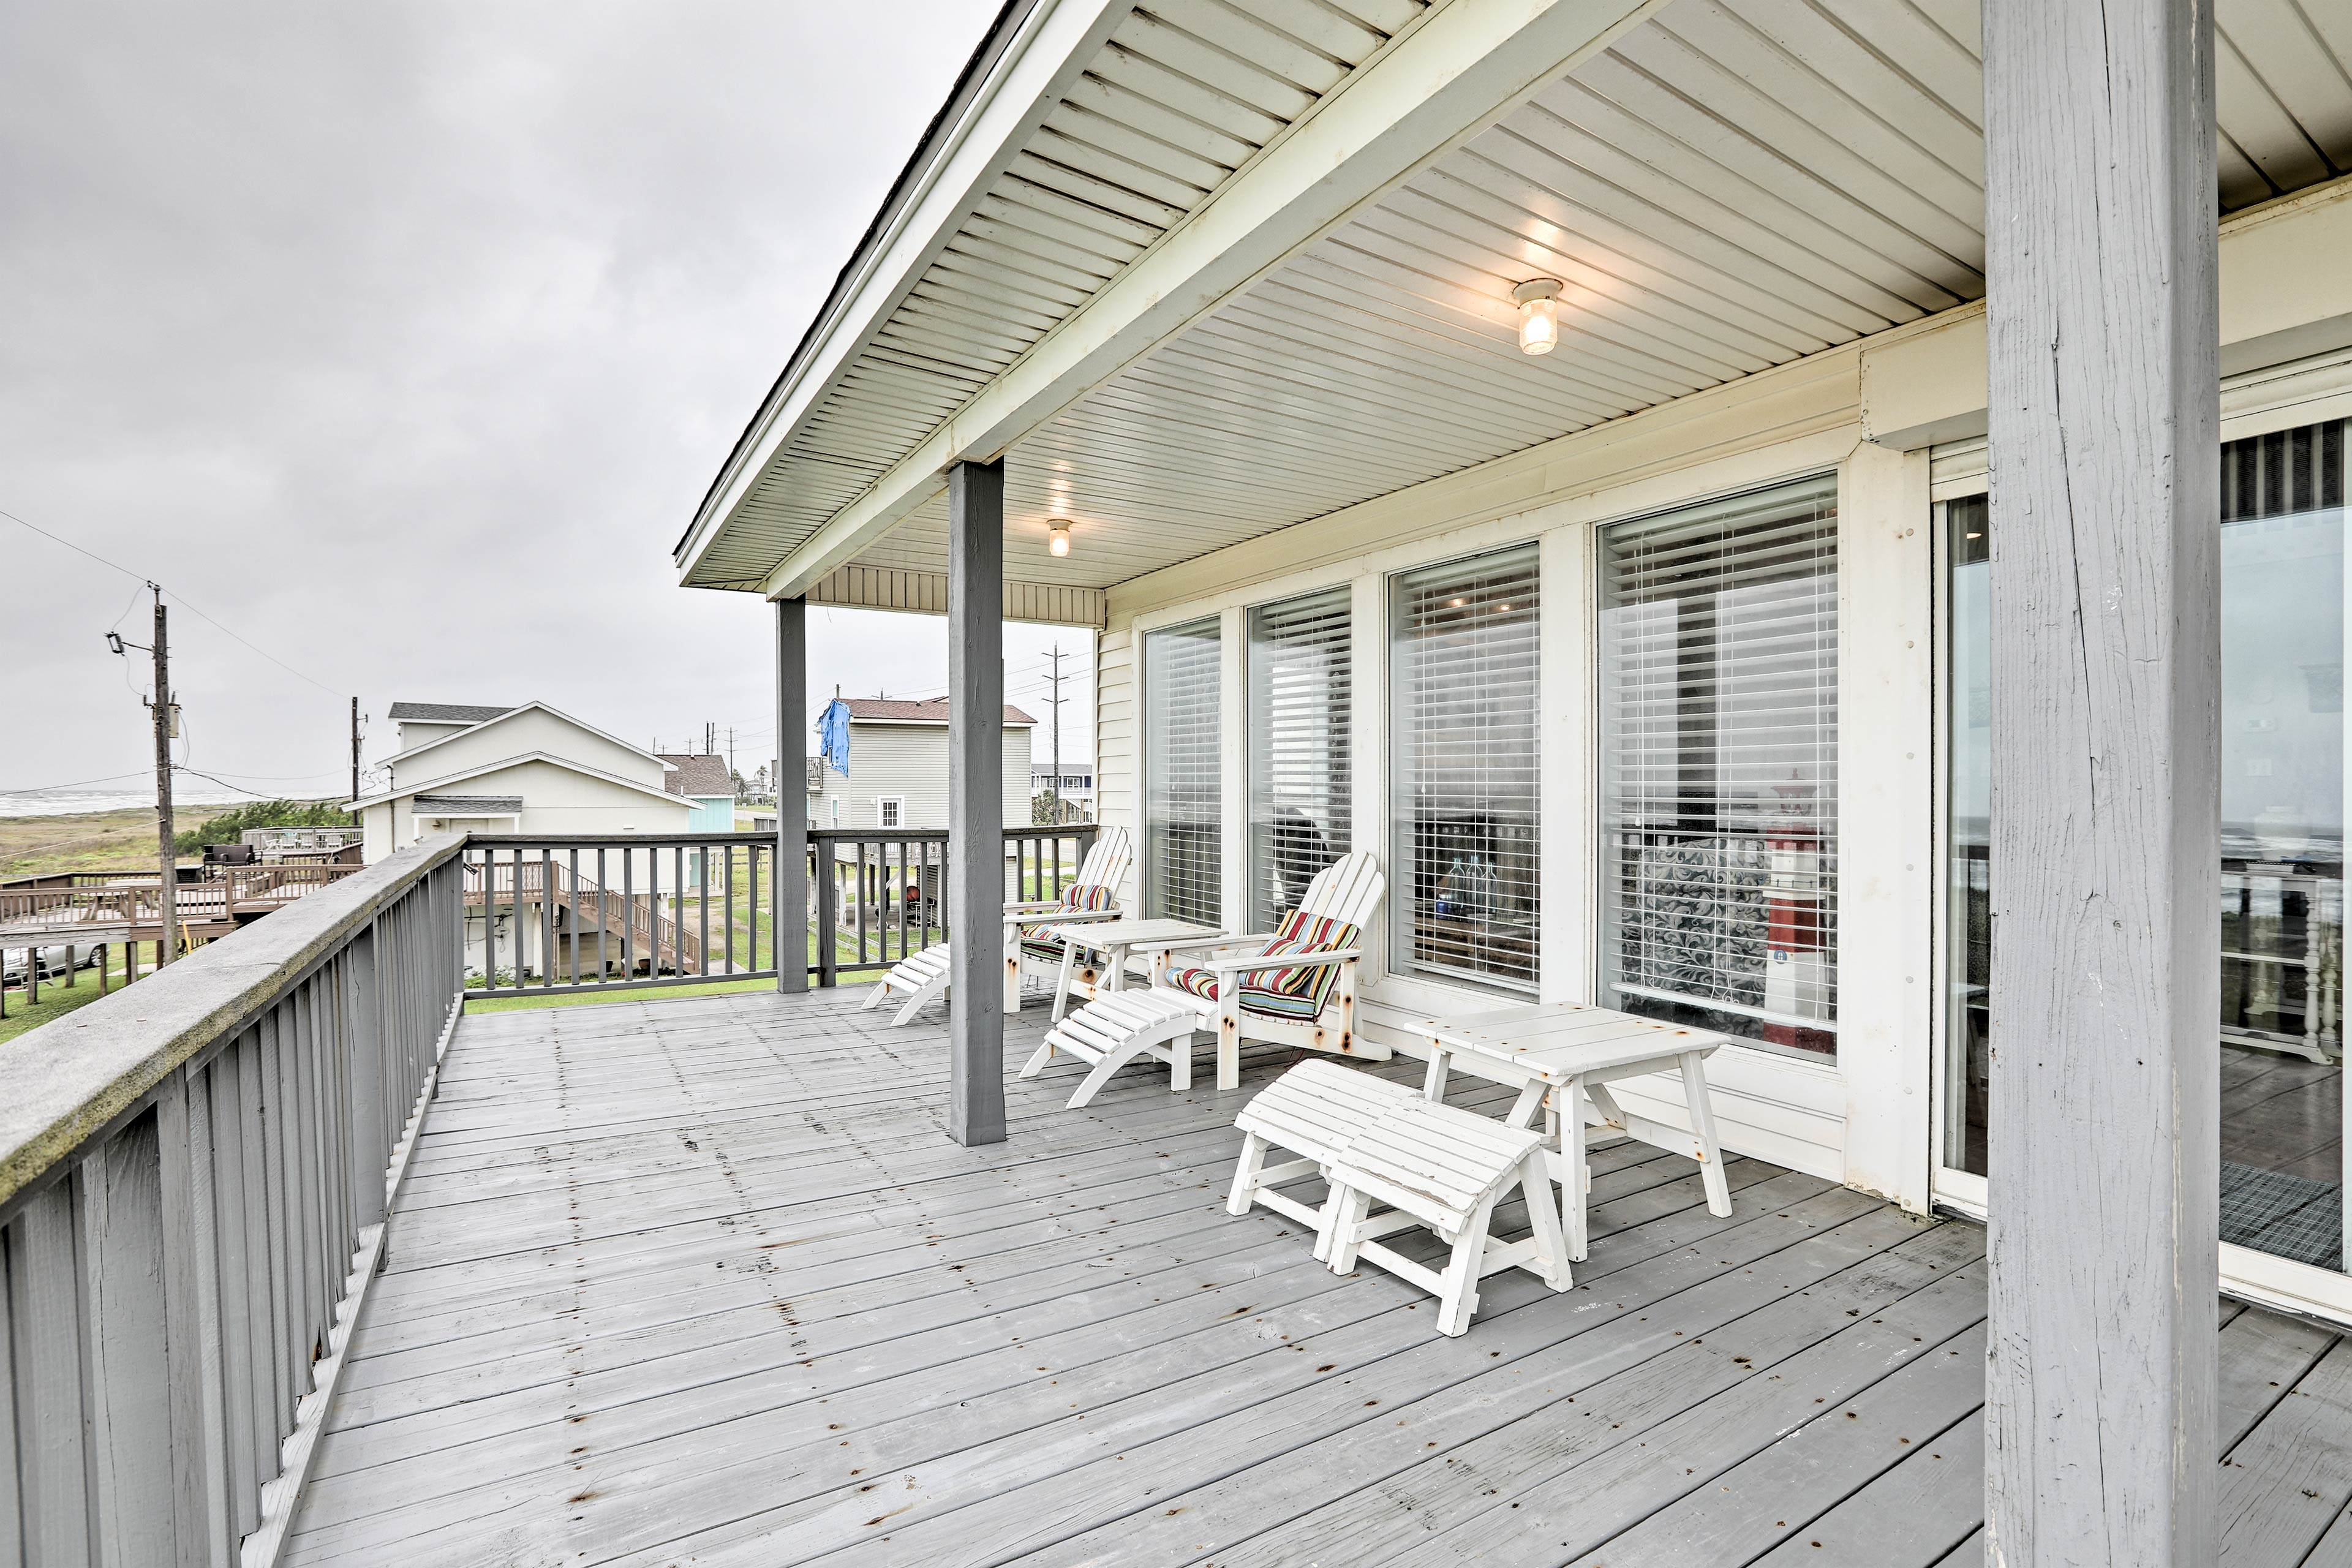 Catch a bit of sun or hide under the covered portion of the deck!